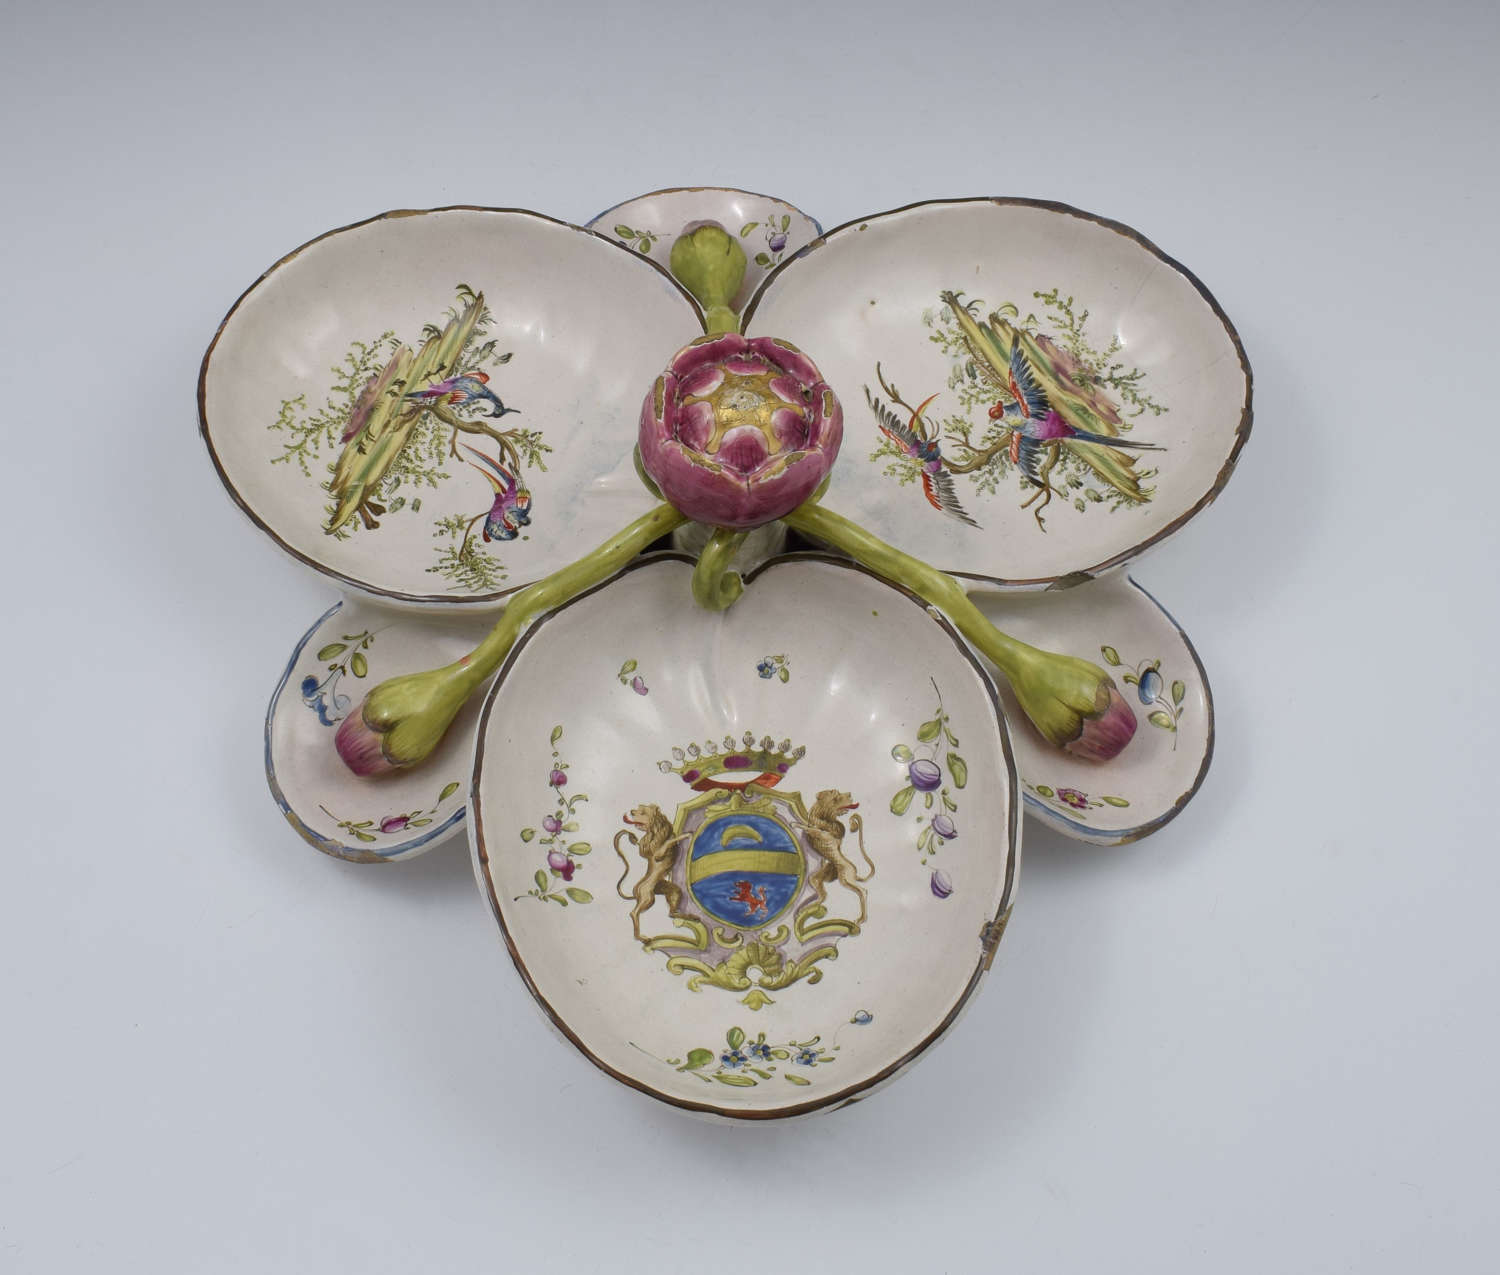 Large French Faience Sweetmeat / Hors D'Oeuvres Dish